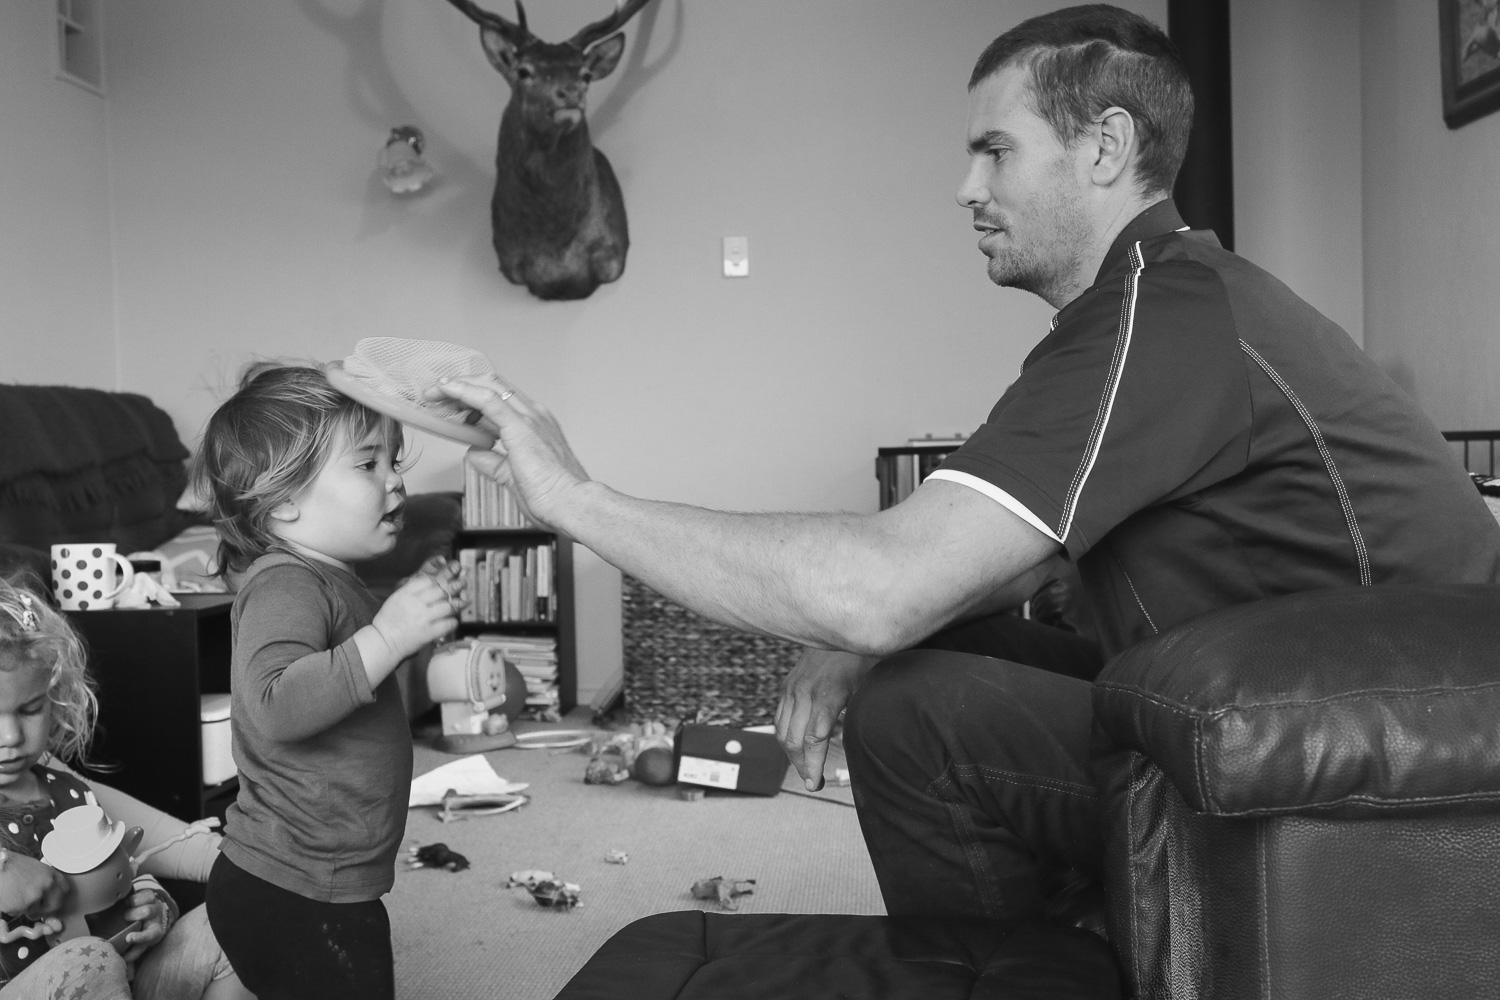 rowland-smith-shearer-playing-with-daughter-at-home-in-lounge.jpg